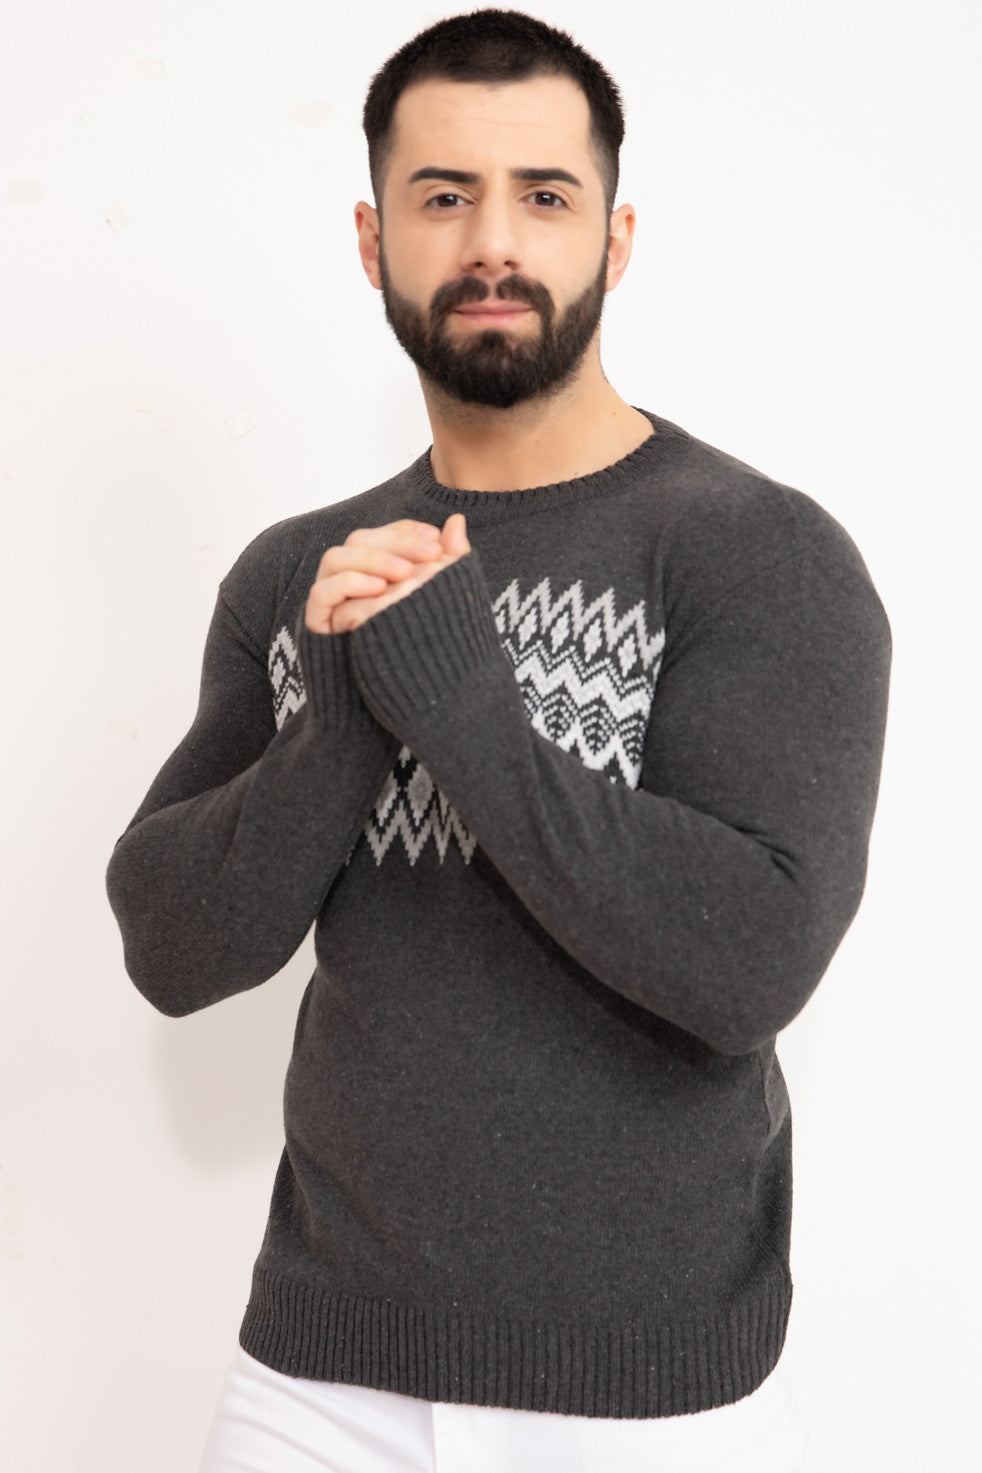 Dark-grey Patterned Men's Knitwear Sweater